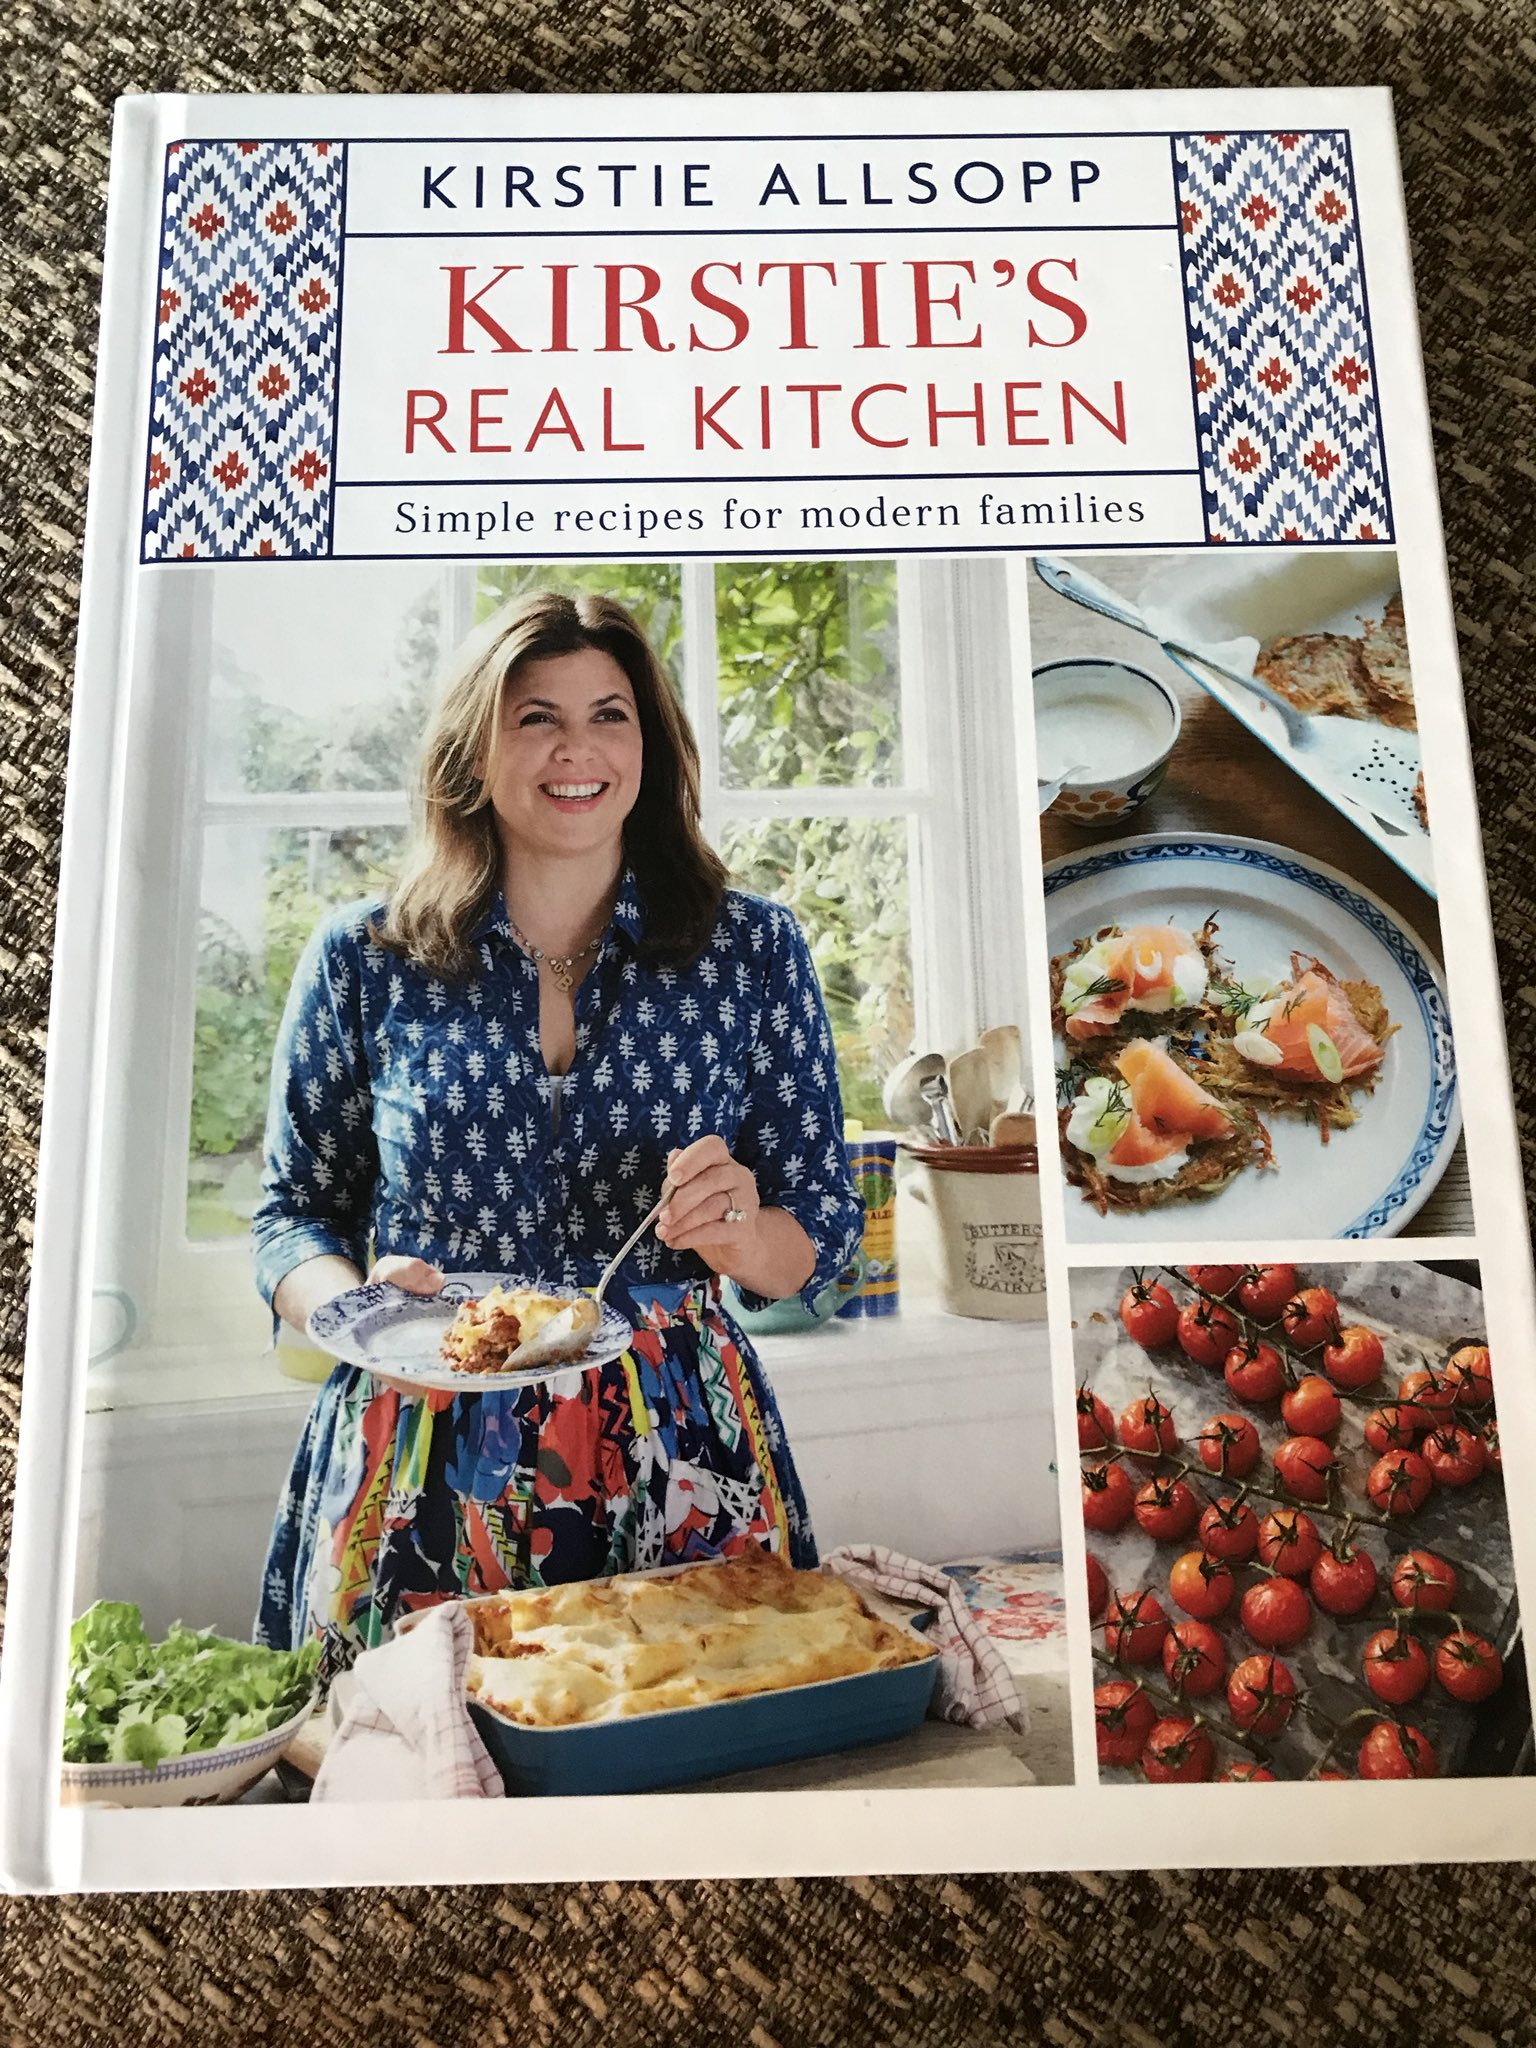 RT @MrsNFG: Birthday present from my Mum @NeceFenn Can't wait to start cooking @KirstieMAllsopp 🤗 https://t.co/9MnLS3G638